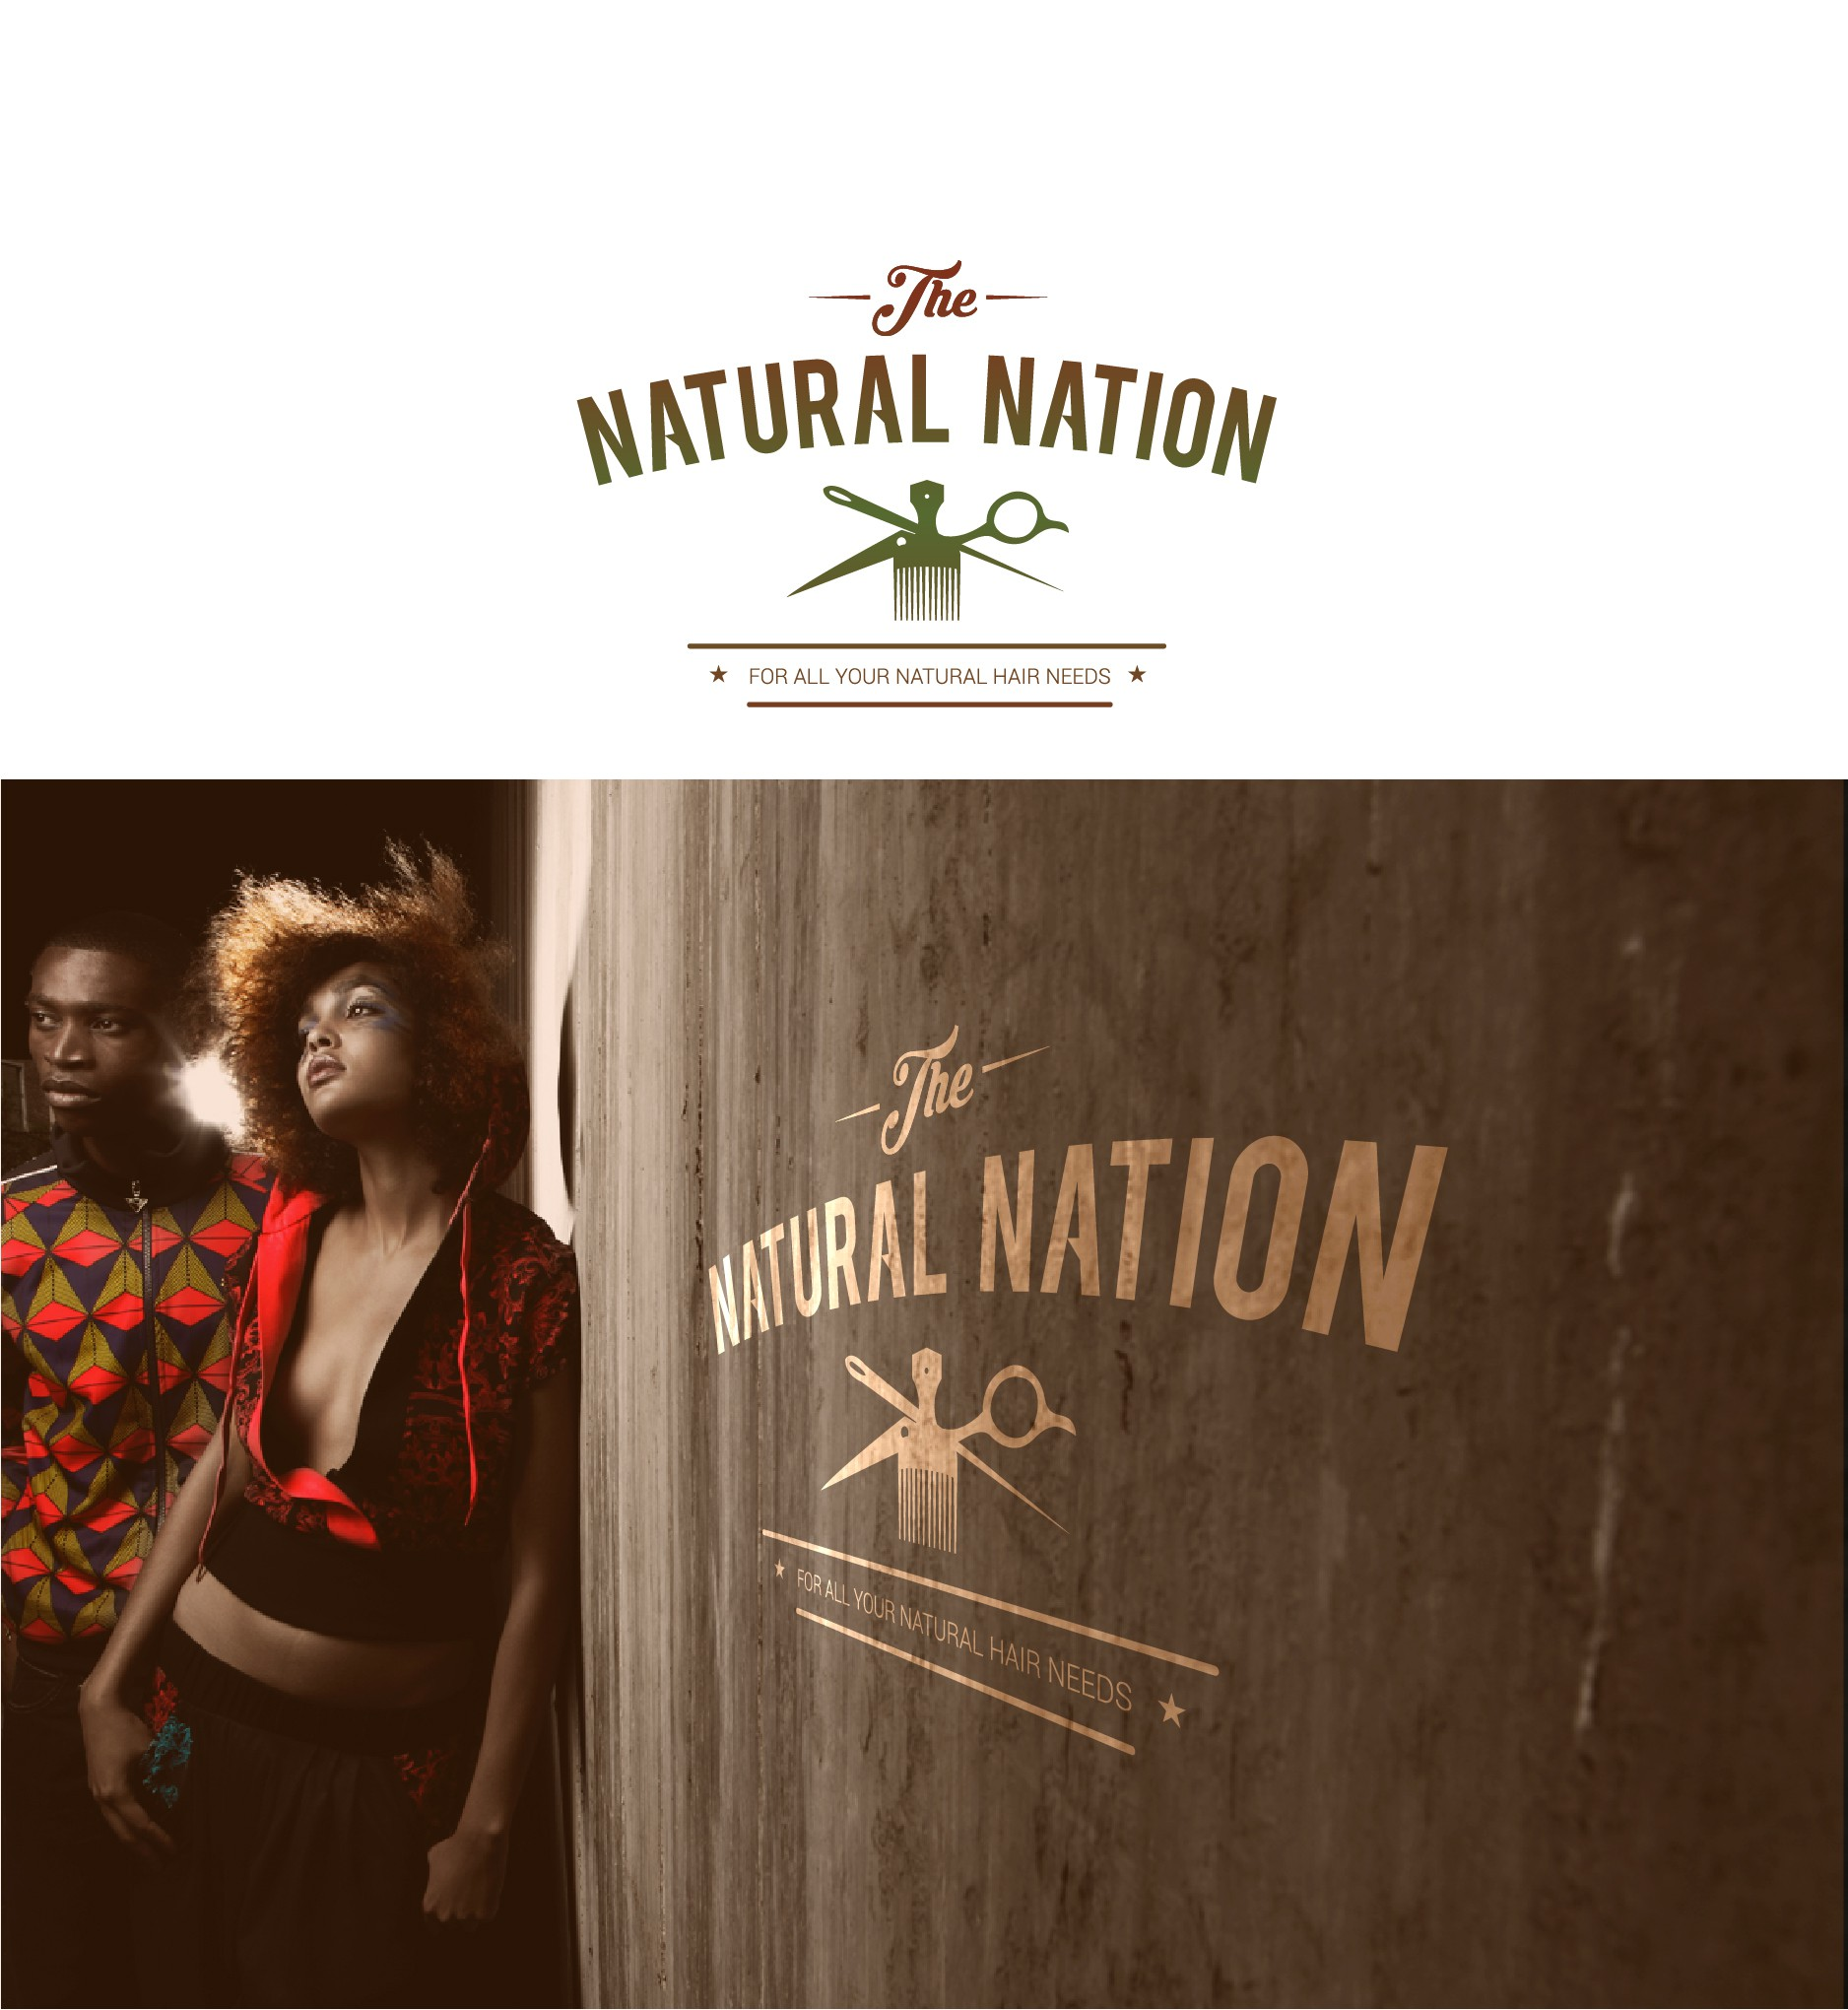 The Natural Nation, Afrocentric hairstyling